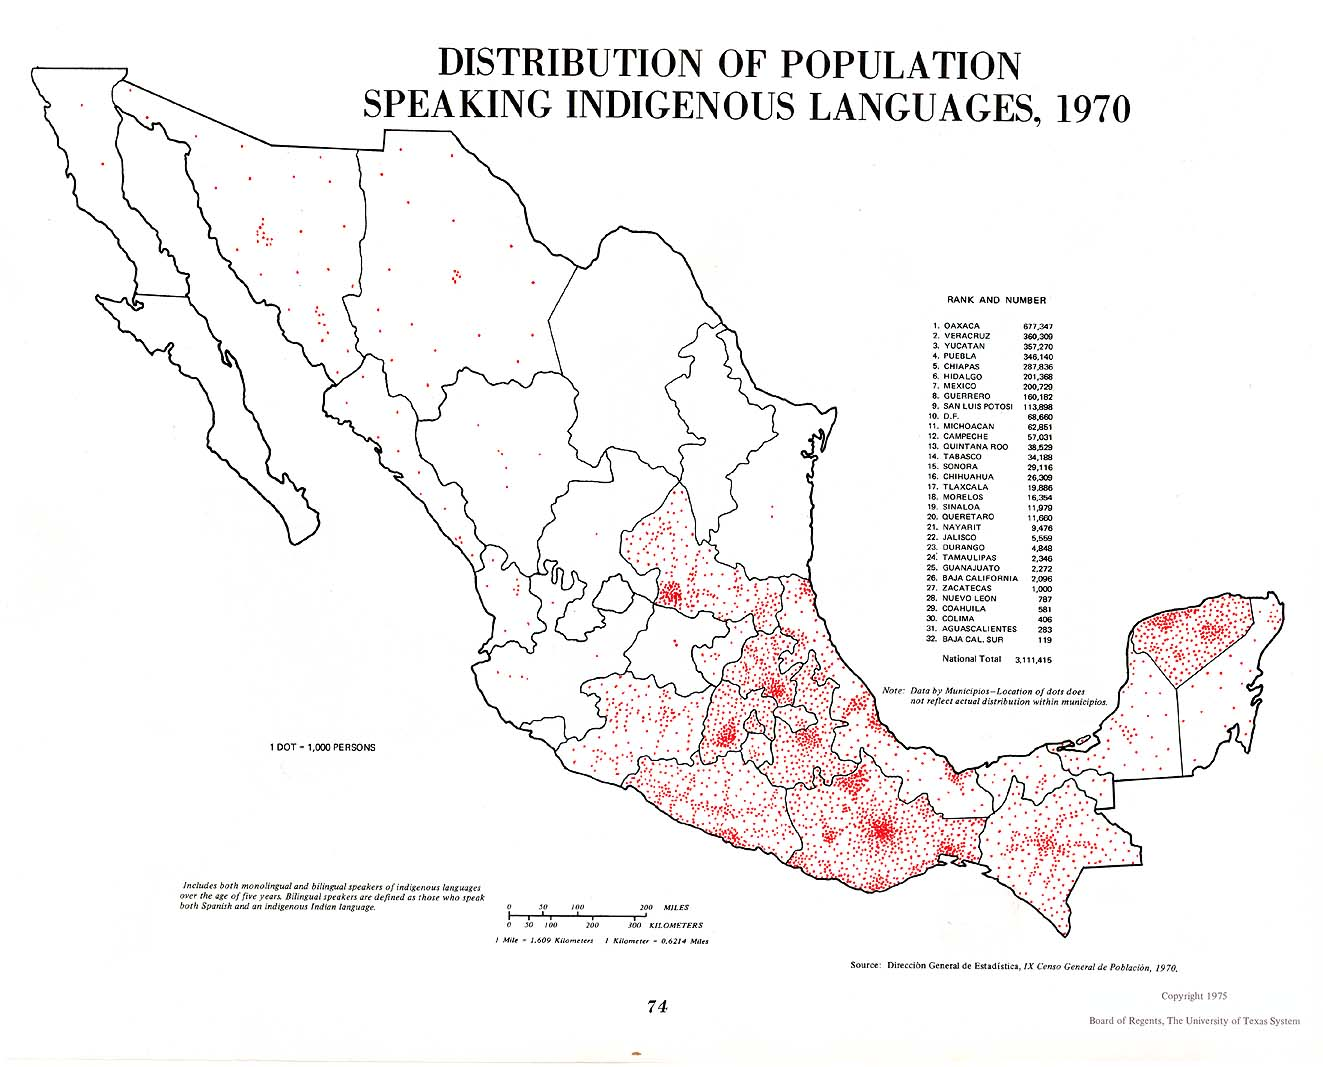 Indigenous Languages, Mexico 1970